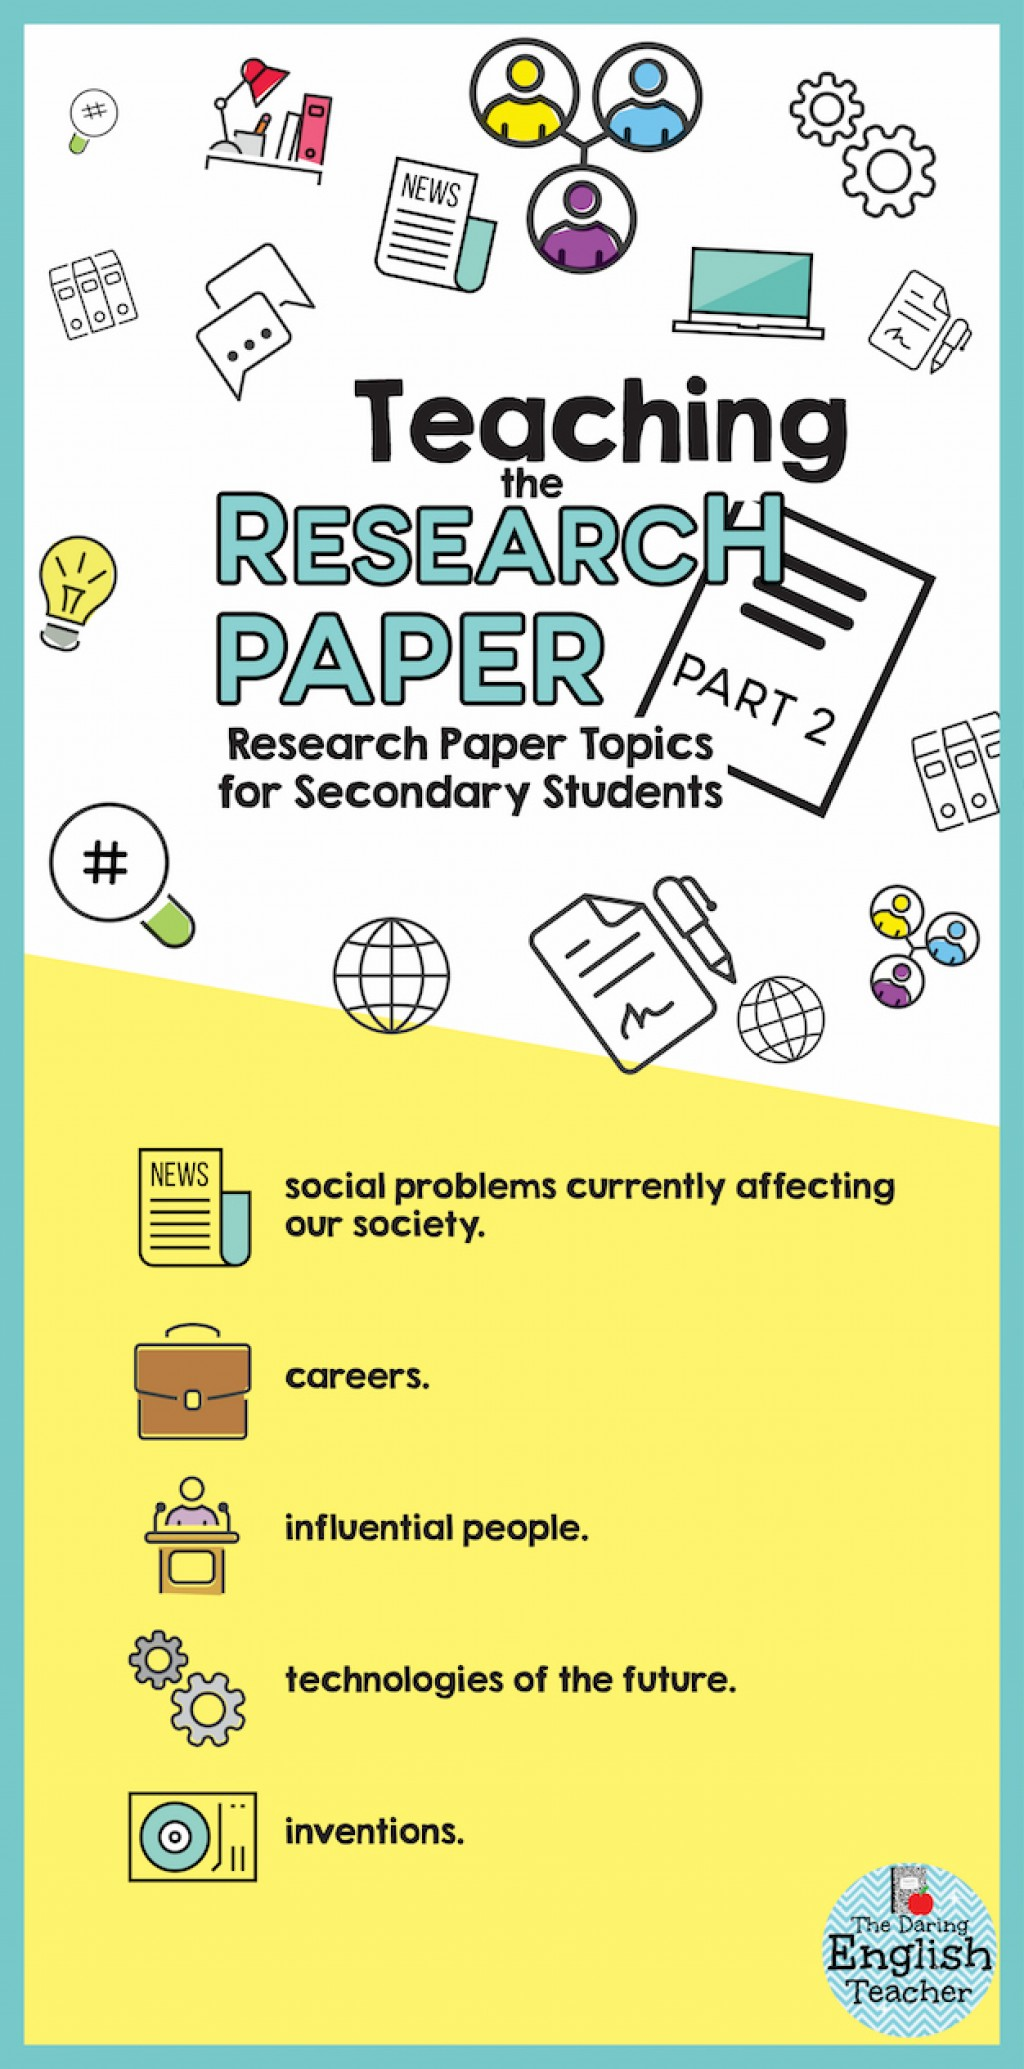 009 Infographic2bp22b2 High School Research Paper Astounding Topics Philippines Science For Students 2019 Large